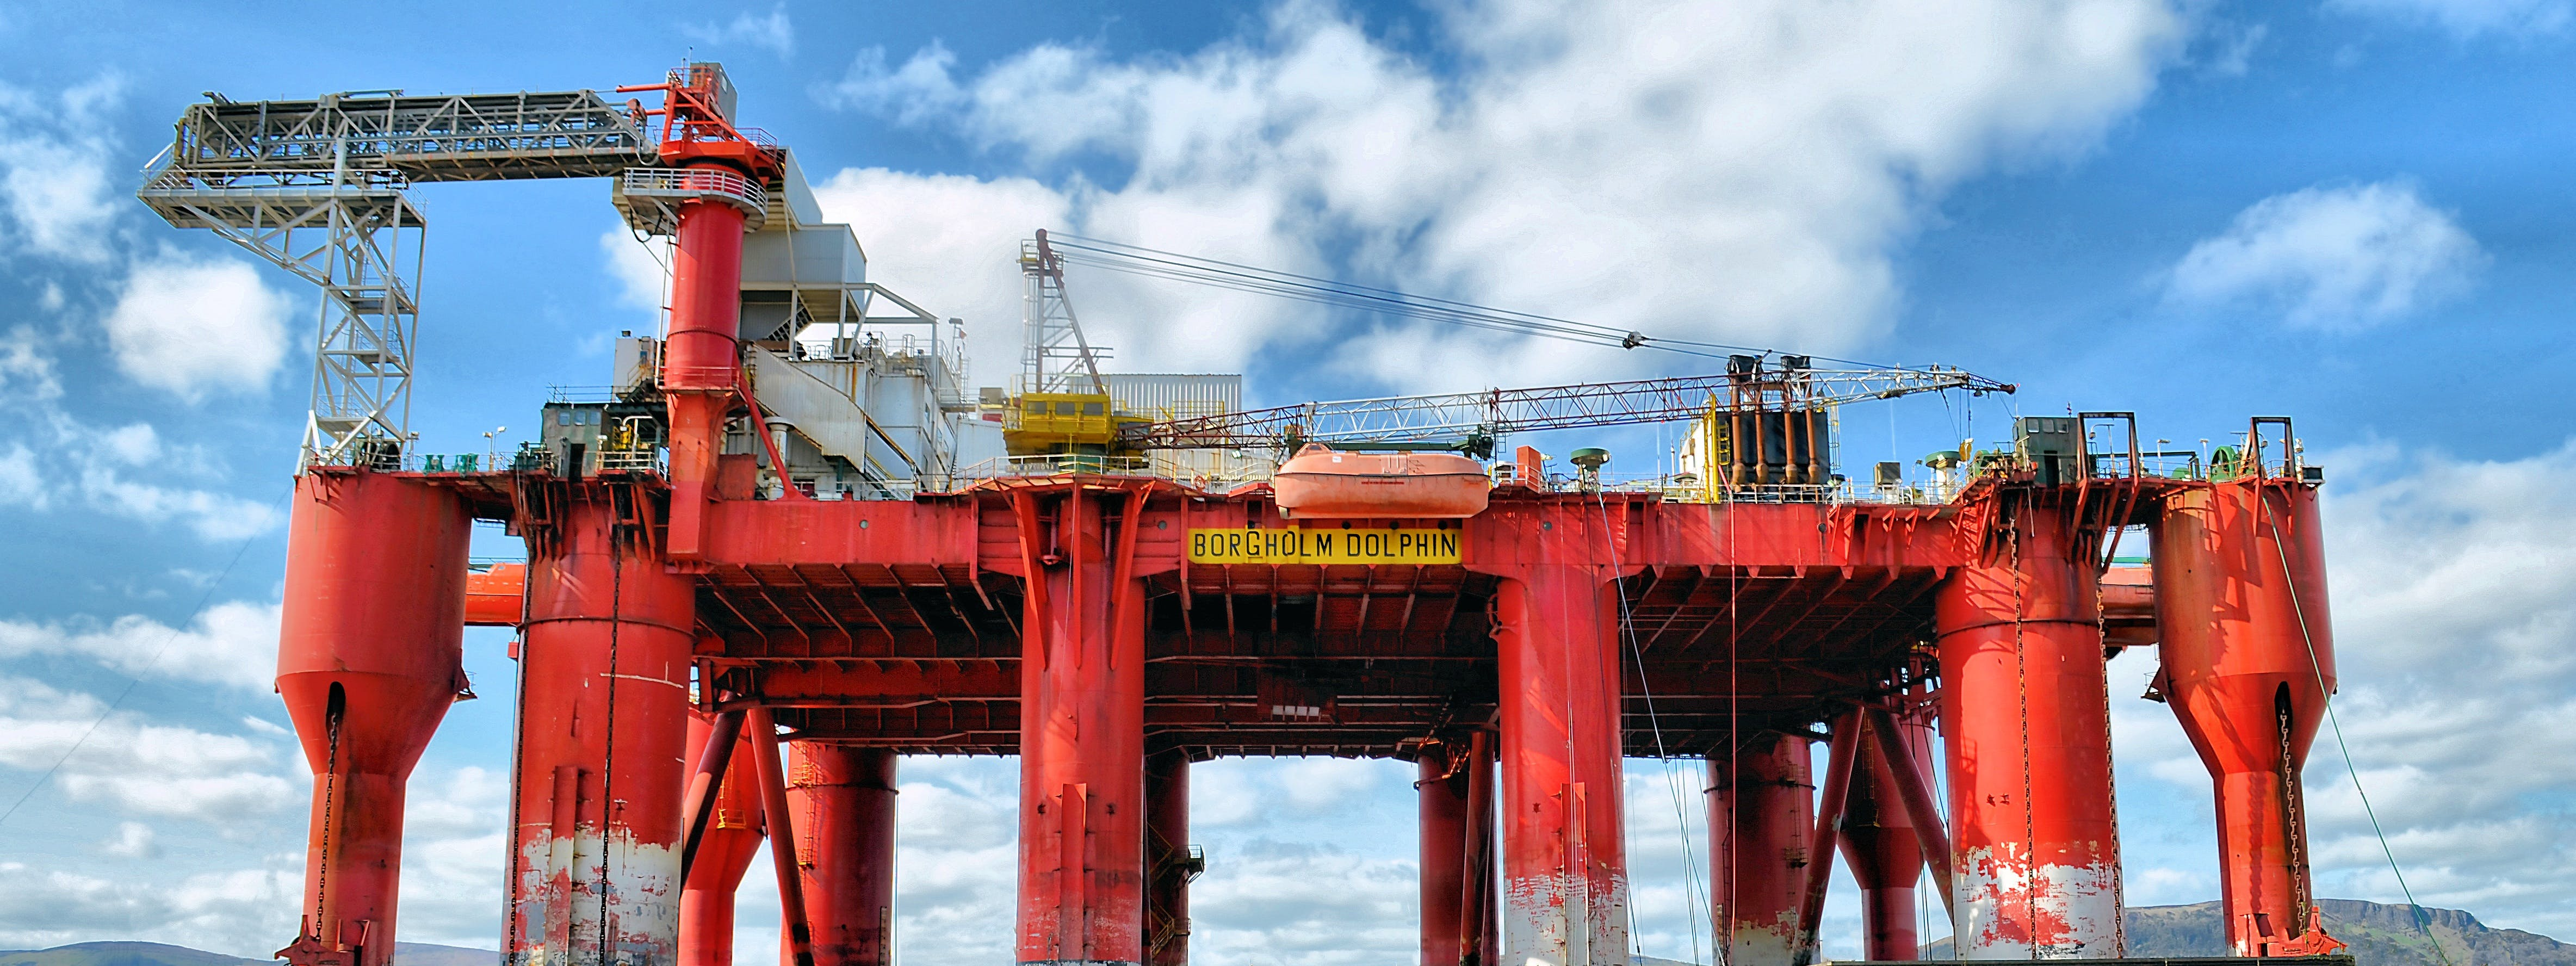 Red and Gray Oil Rig Under Blue and White Cloudy Sky